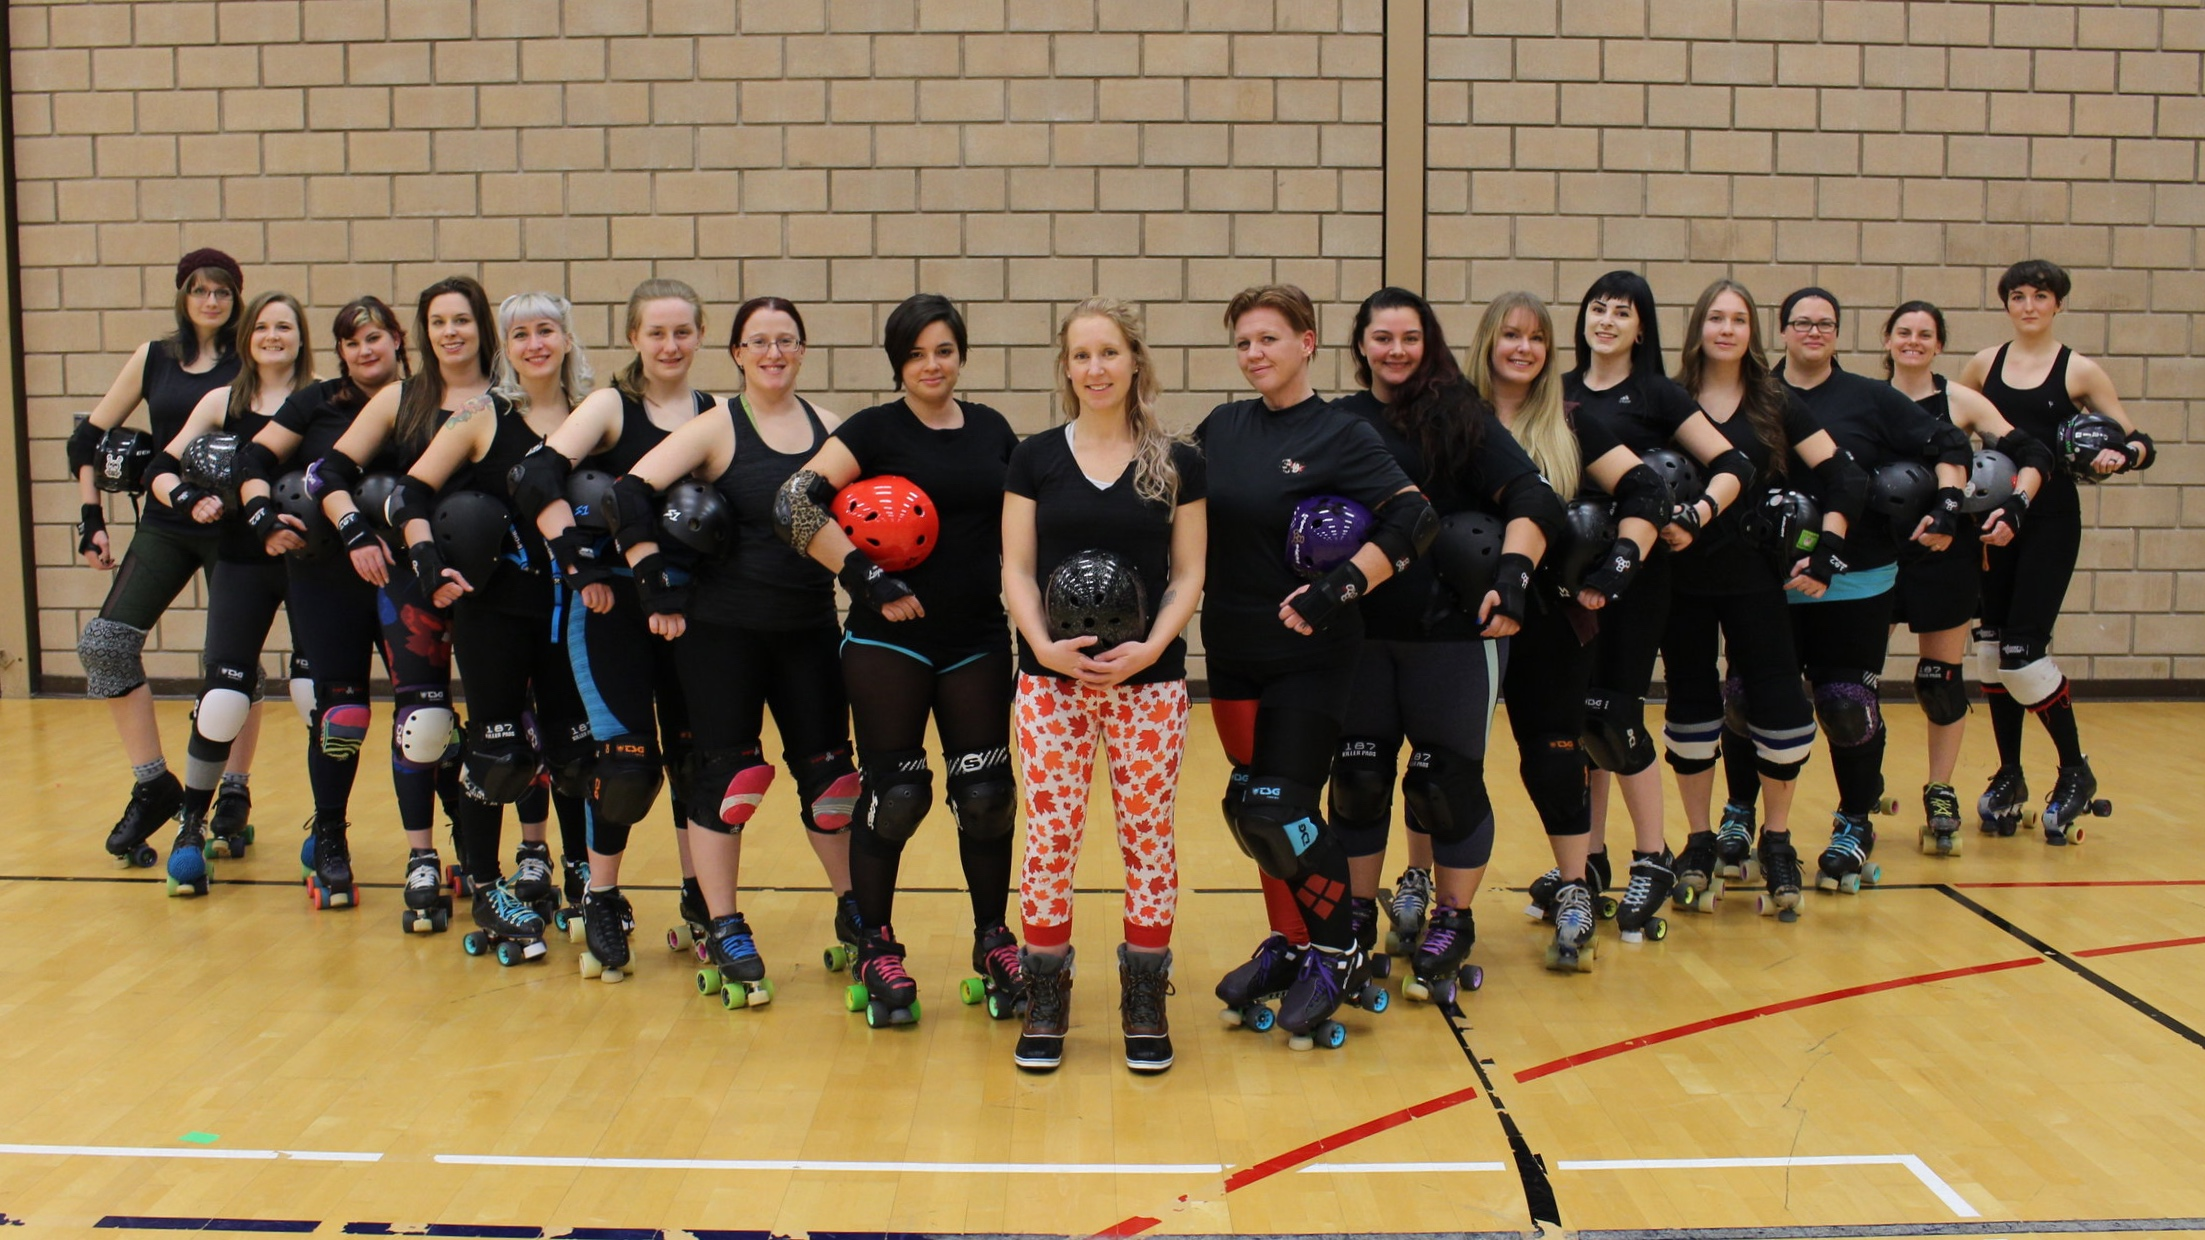 From left to right: Sweet Leggy Jane - Leithal Weapon - Dolly Disheveled - Patschit Crazy - Thistle - Gnarlie Chaplin - Hosstile - Ripple - Trackula - Puppet Masher - Queen Elizadeath - Boom - Lula - Kellin' It - Princess Bust'Her'Up - Crowbar - Pain Eyre